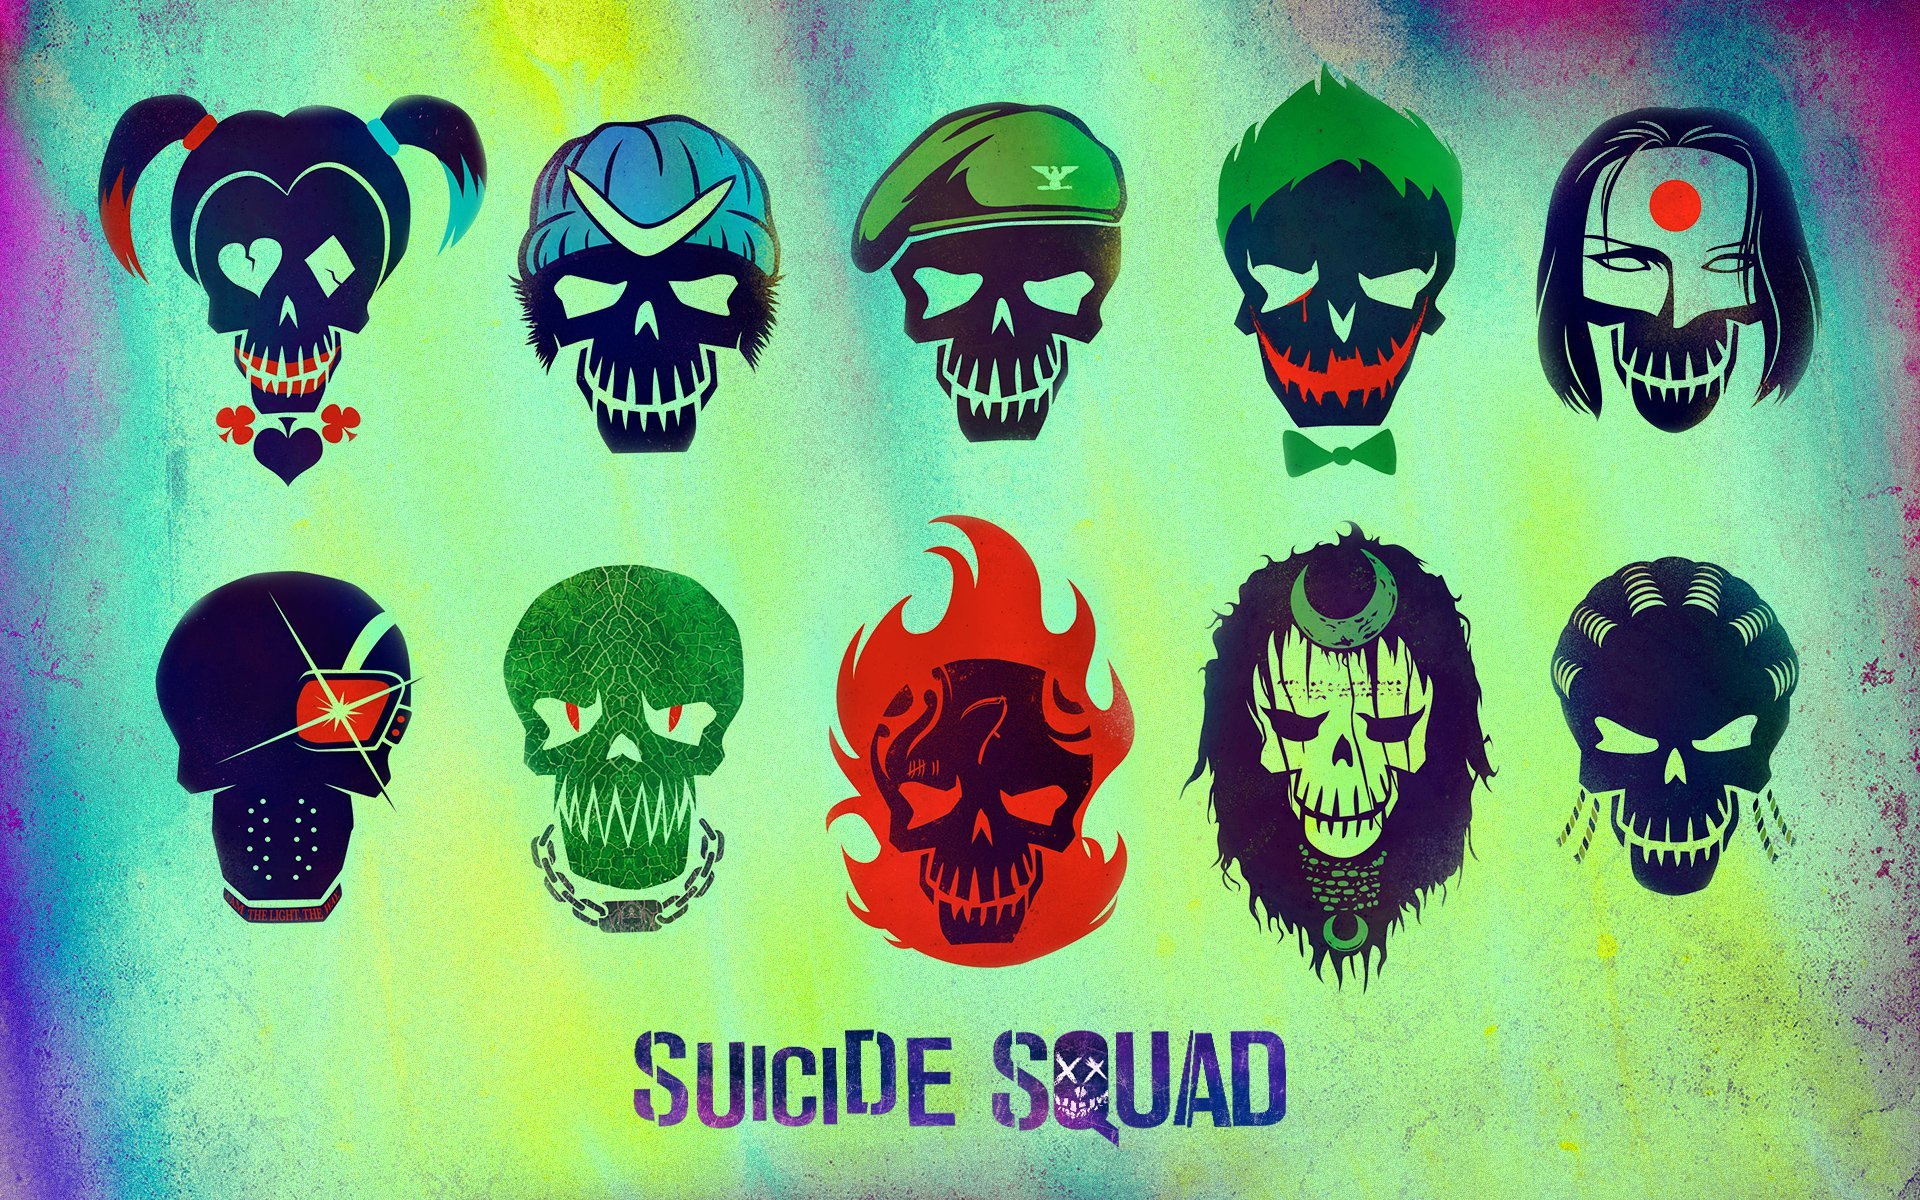 Suicide Squad Wallpapers HD 7658LNY   4USkY 1920x1200